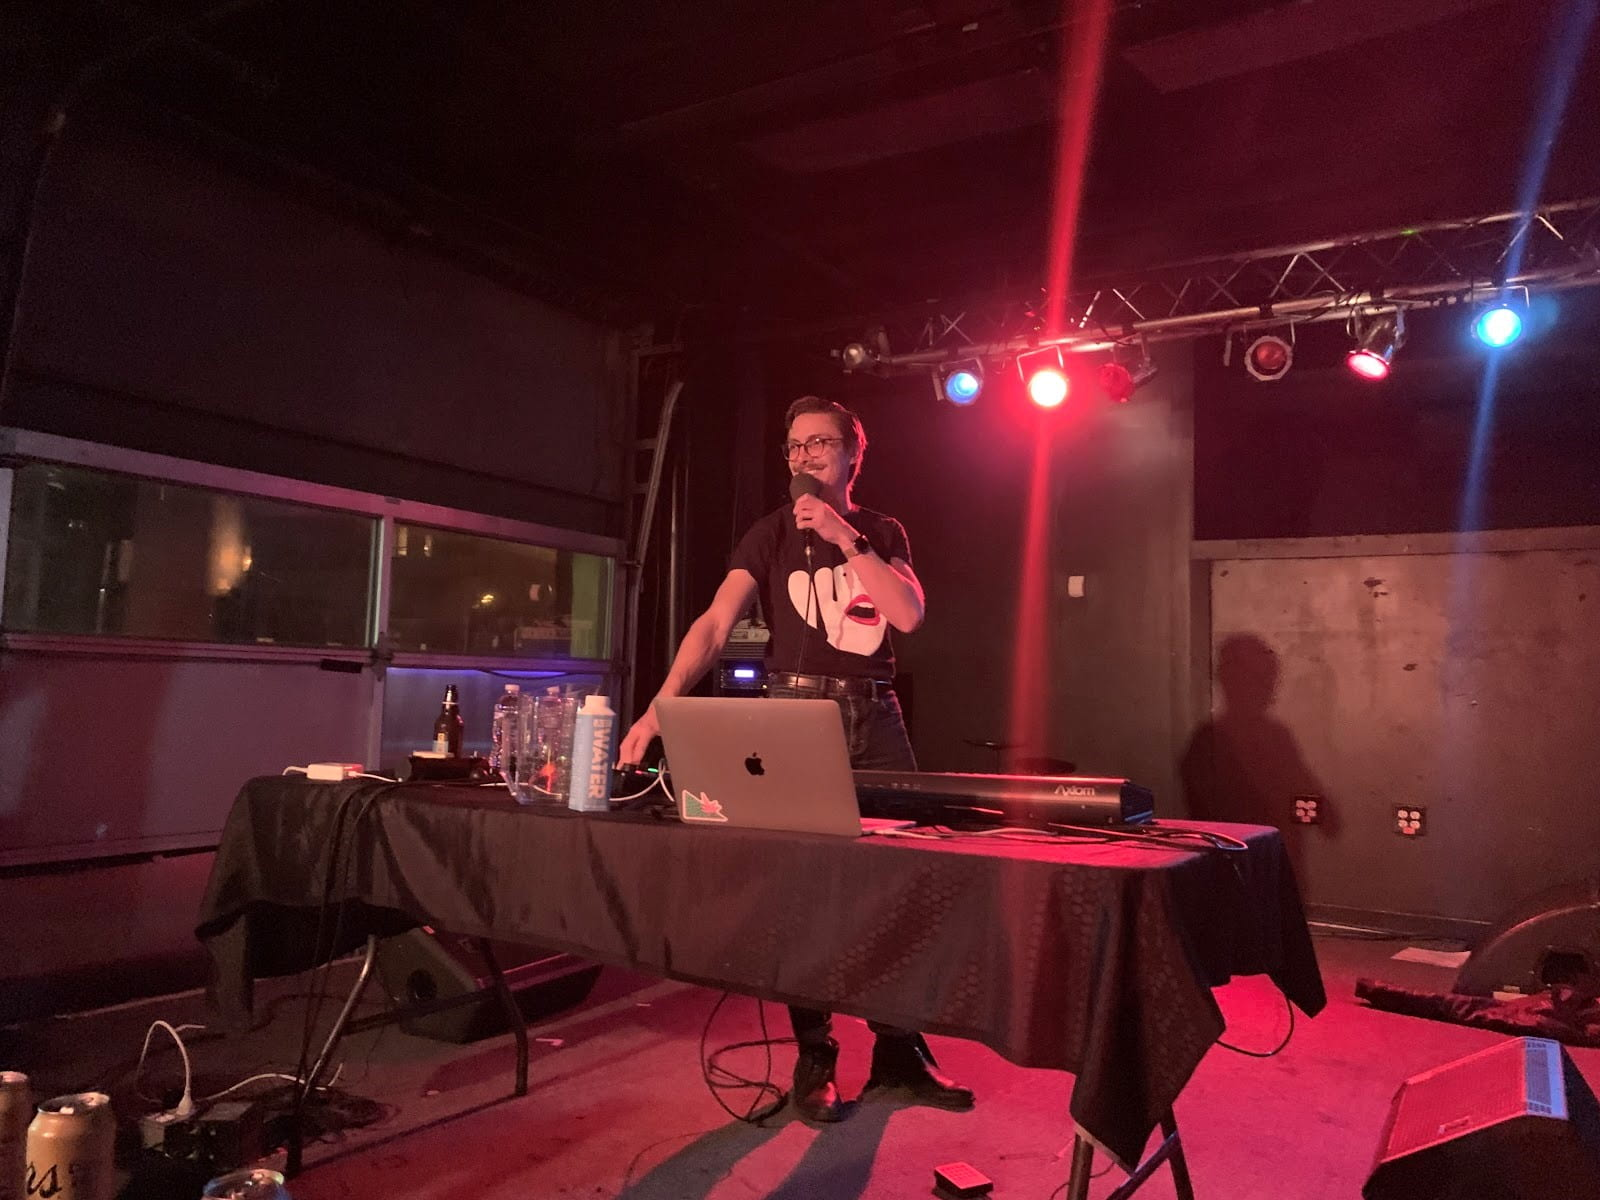 Concert review: Marc Rebillet brings comedy and talent to